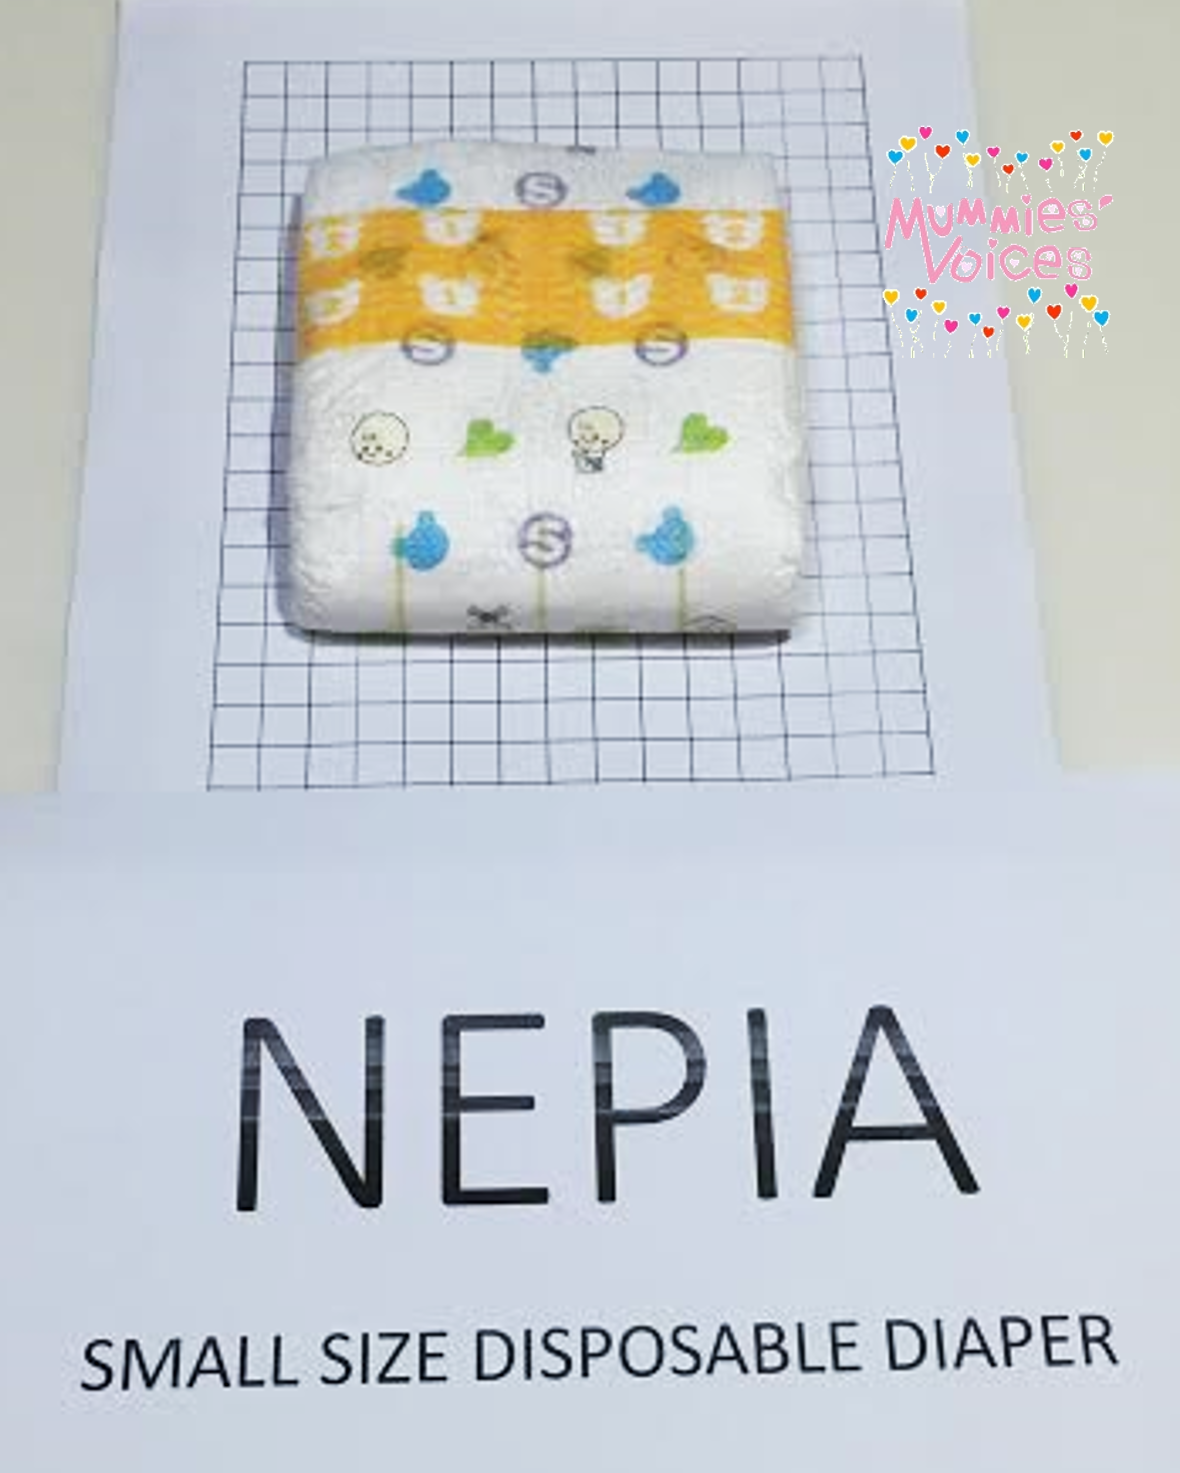 Review The Diaper Challenge 14 Brands Of Small Size Disposable Nepia Genki New Premium Baby Diapers Soft Pants Xl 26 8